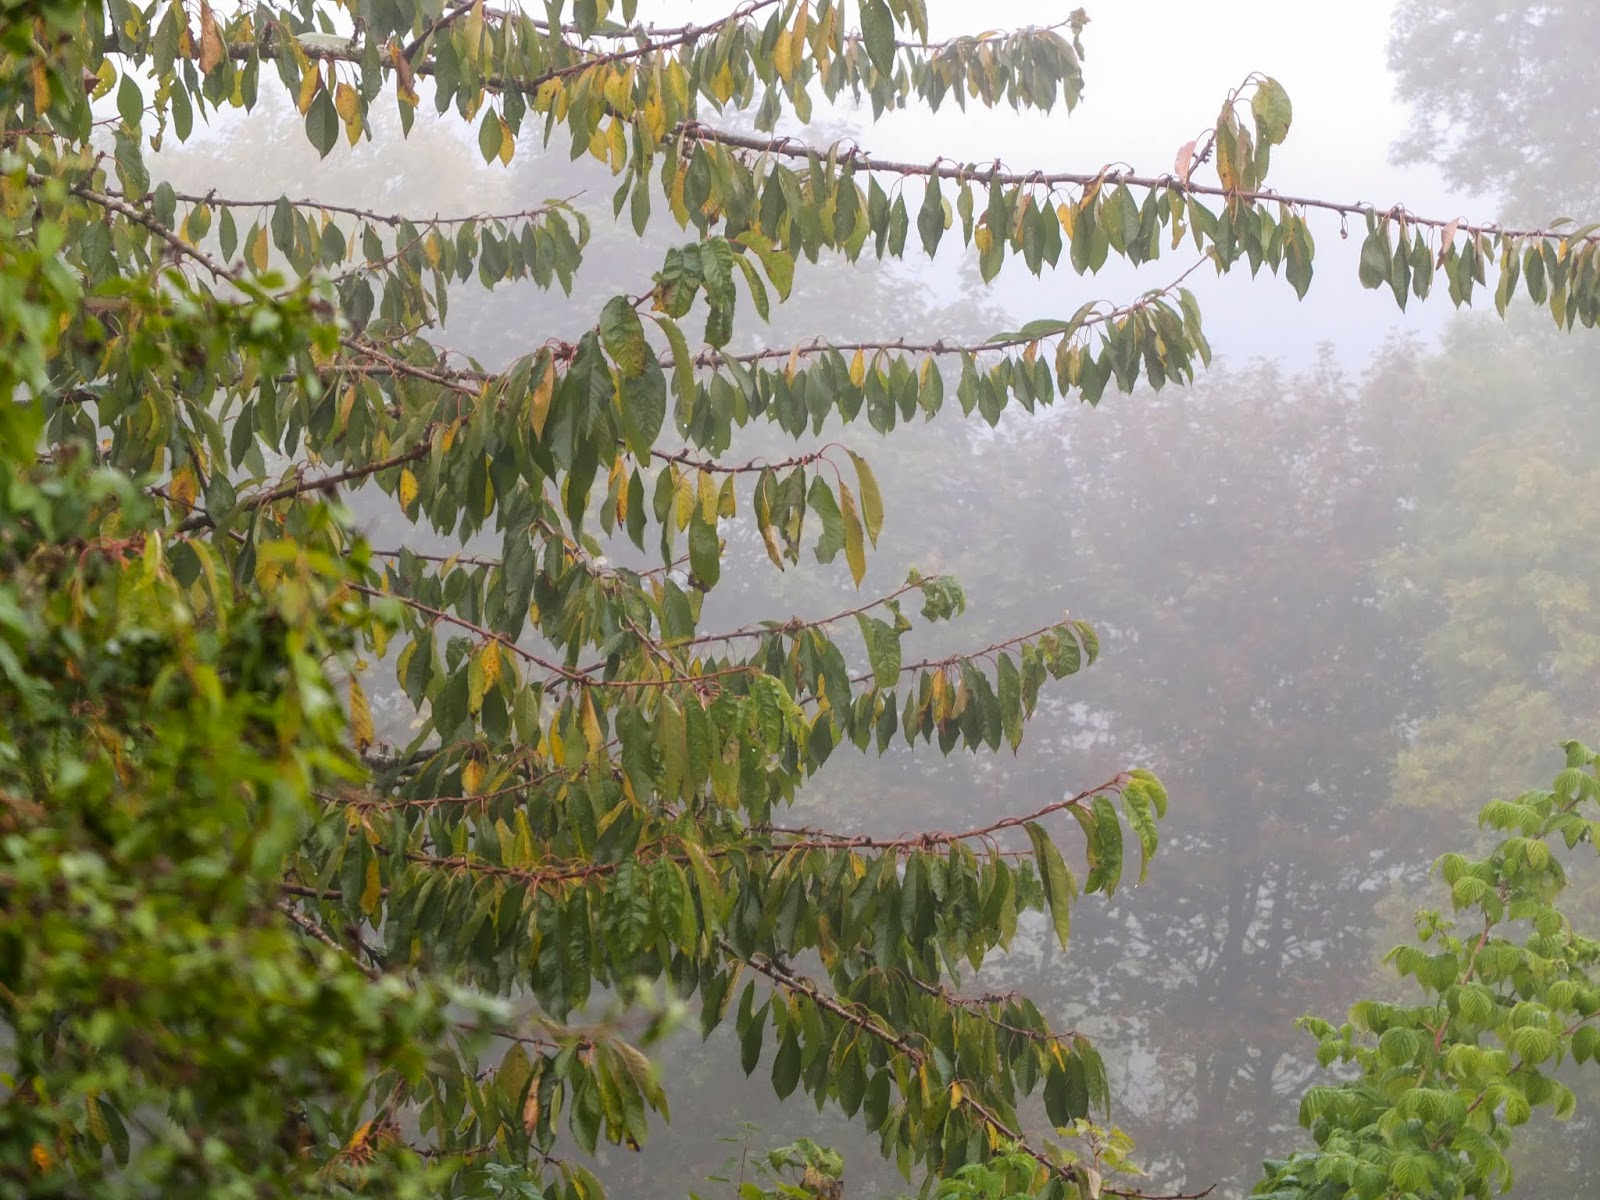 Cherry tree branches in the mist in a valley in the Boggeragh Mountains.